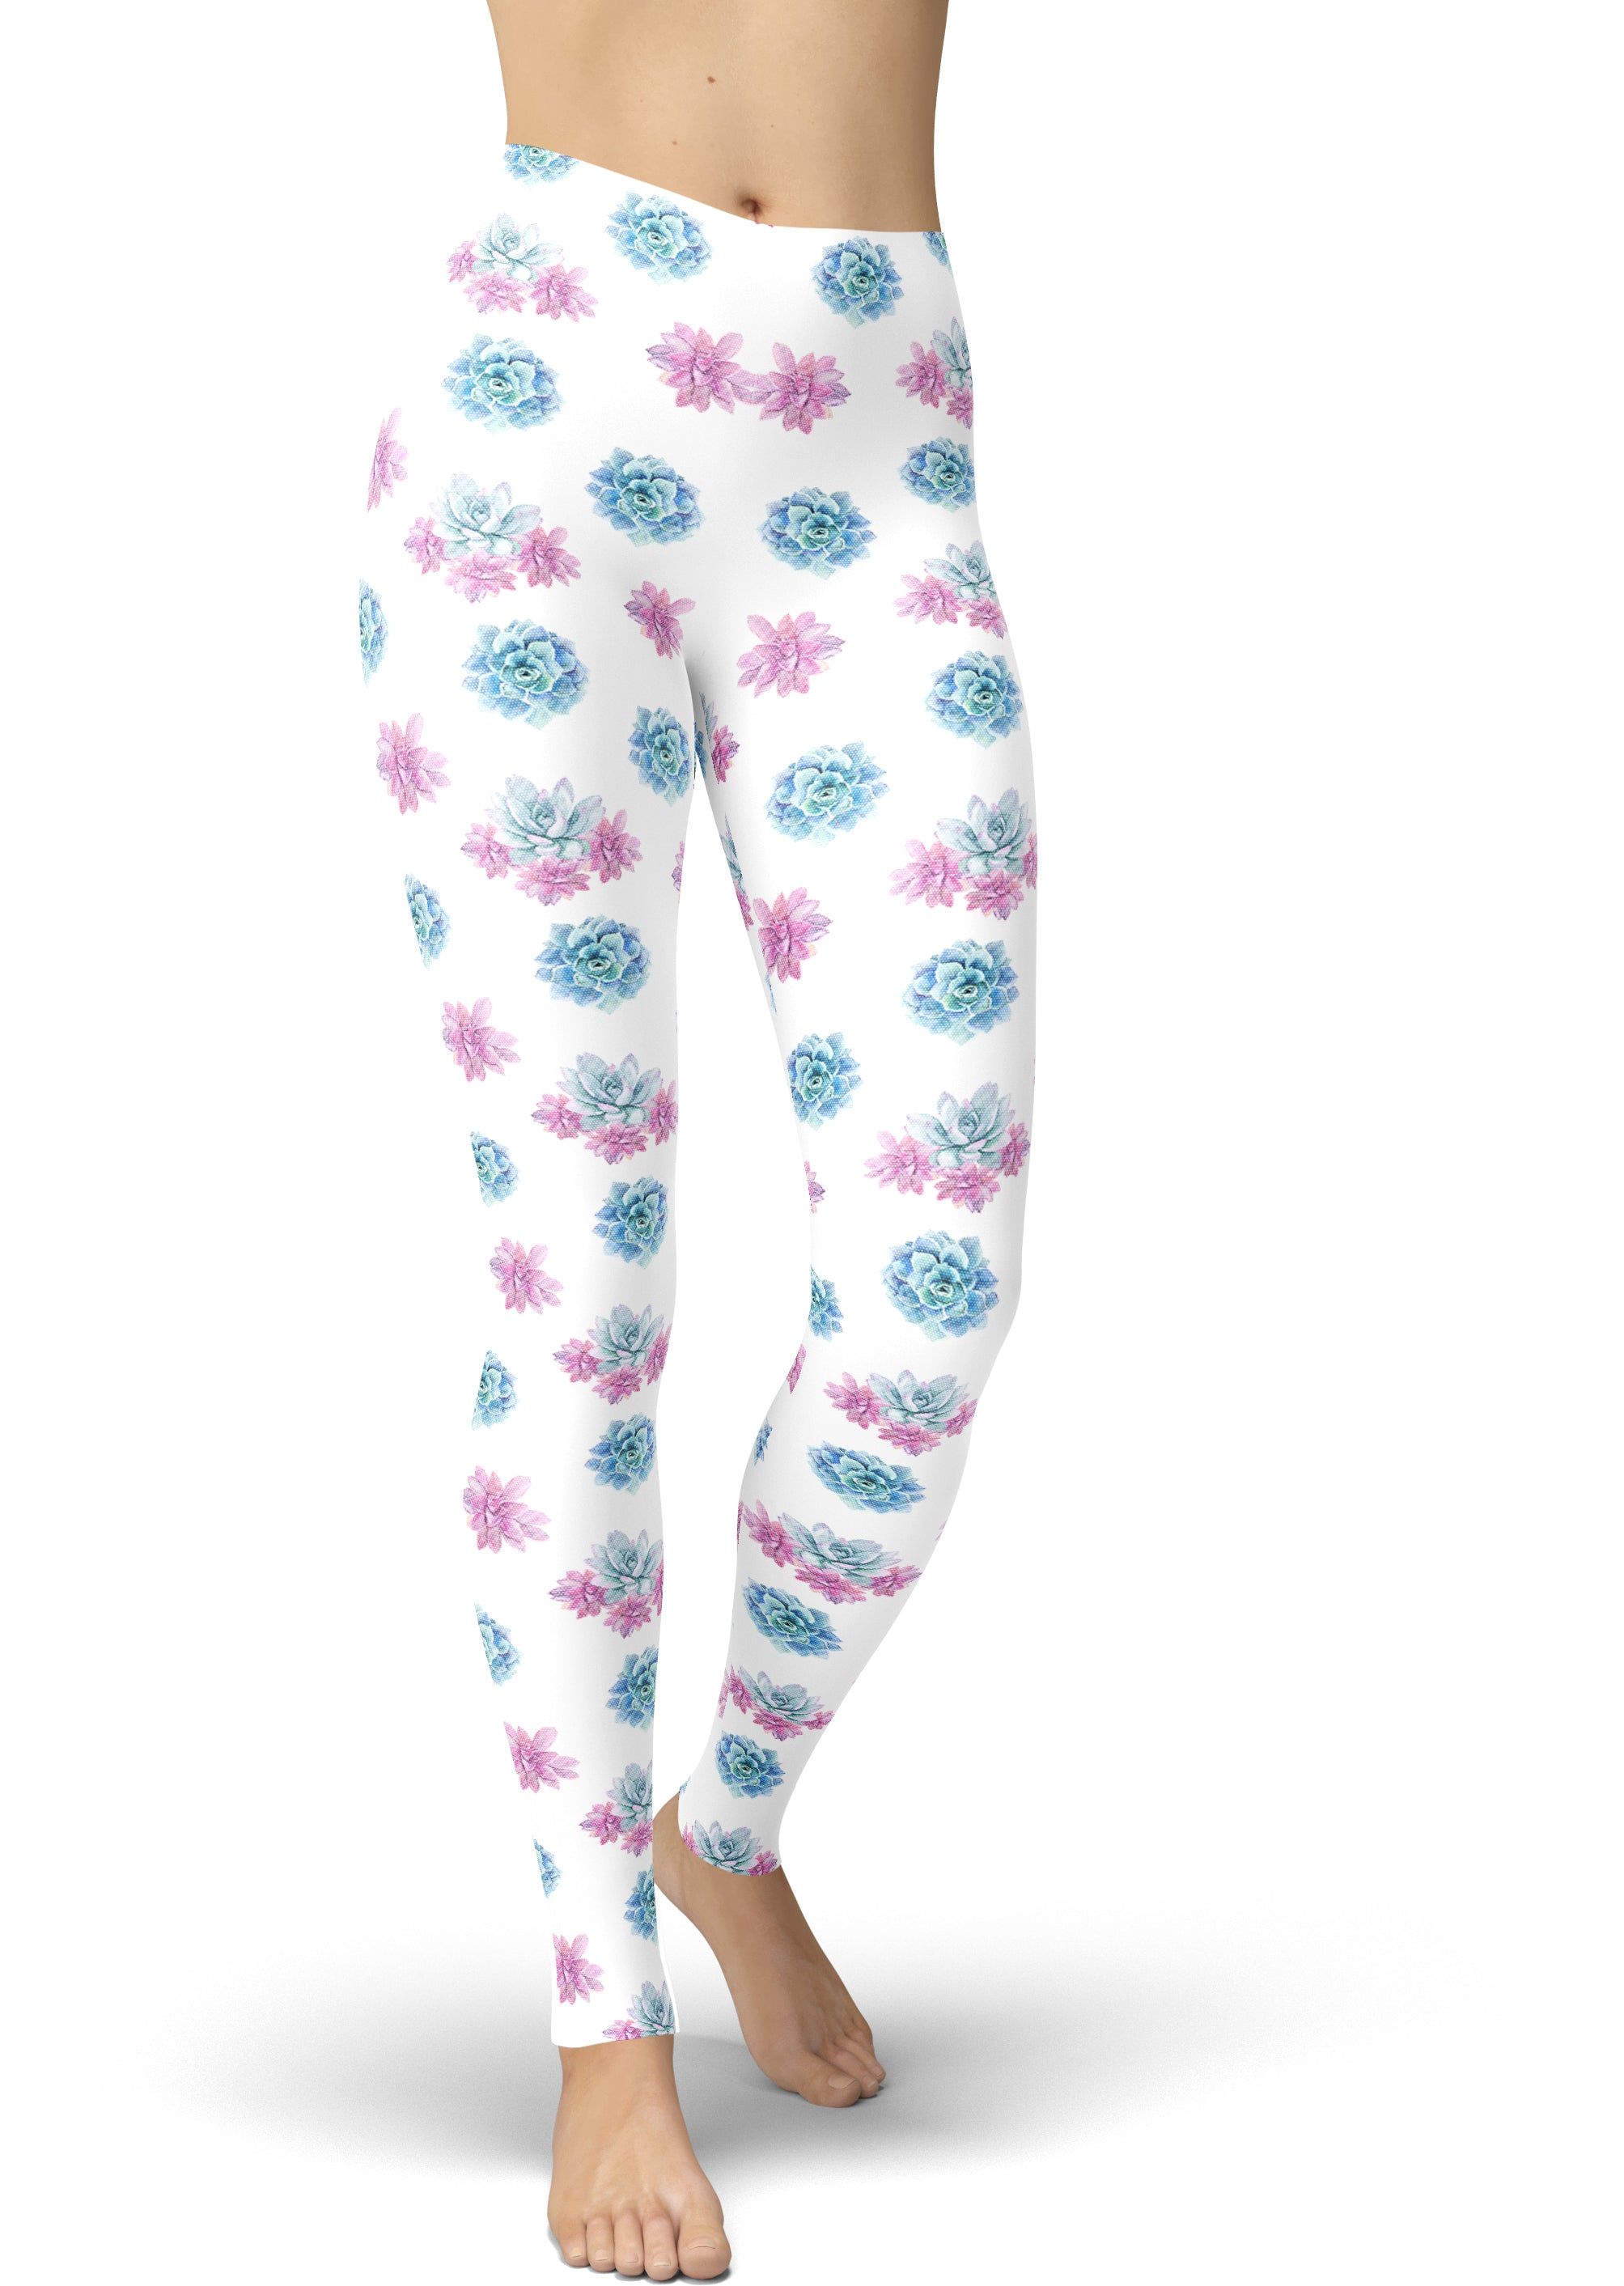 SucculenTea Leggings